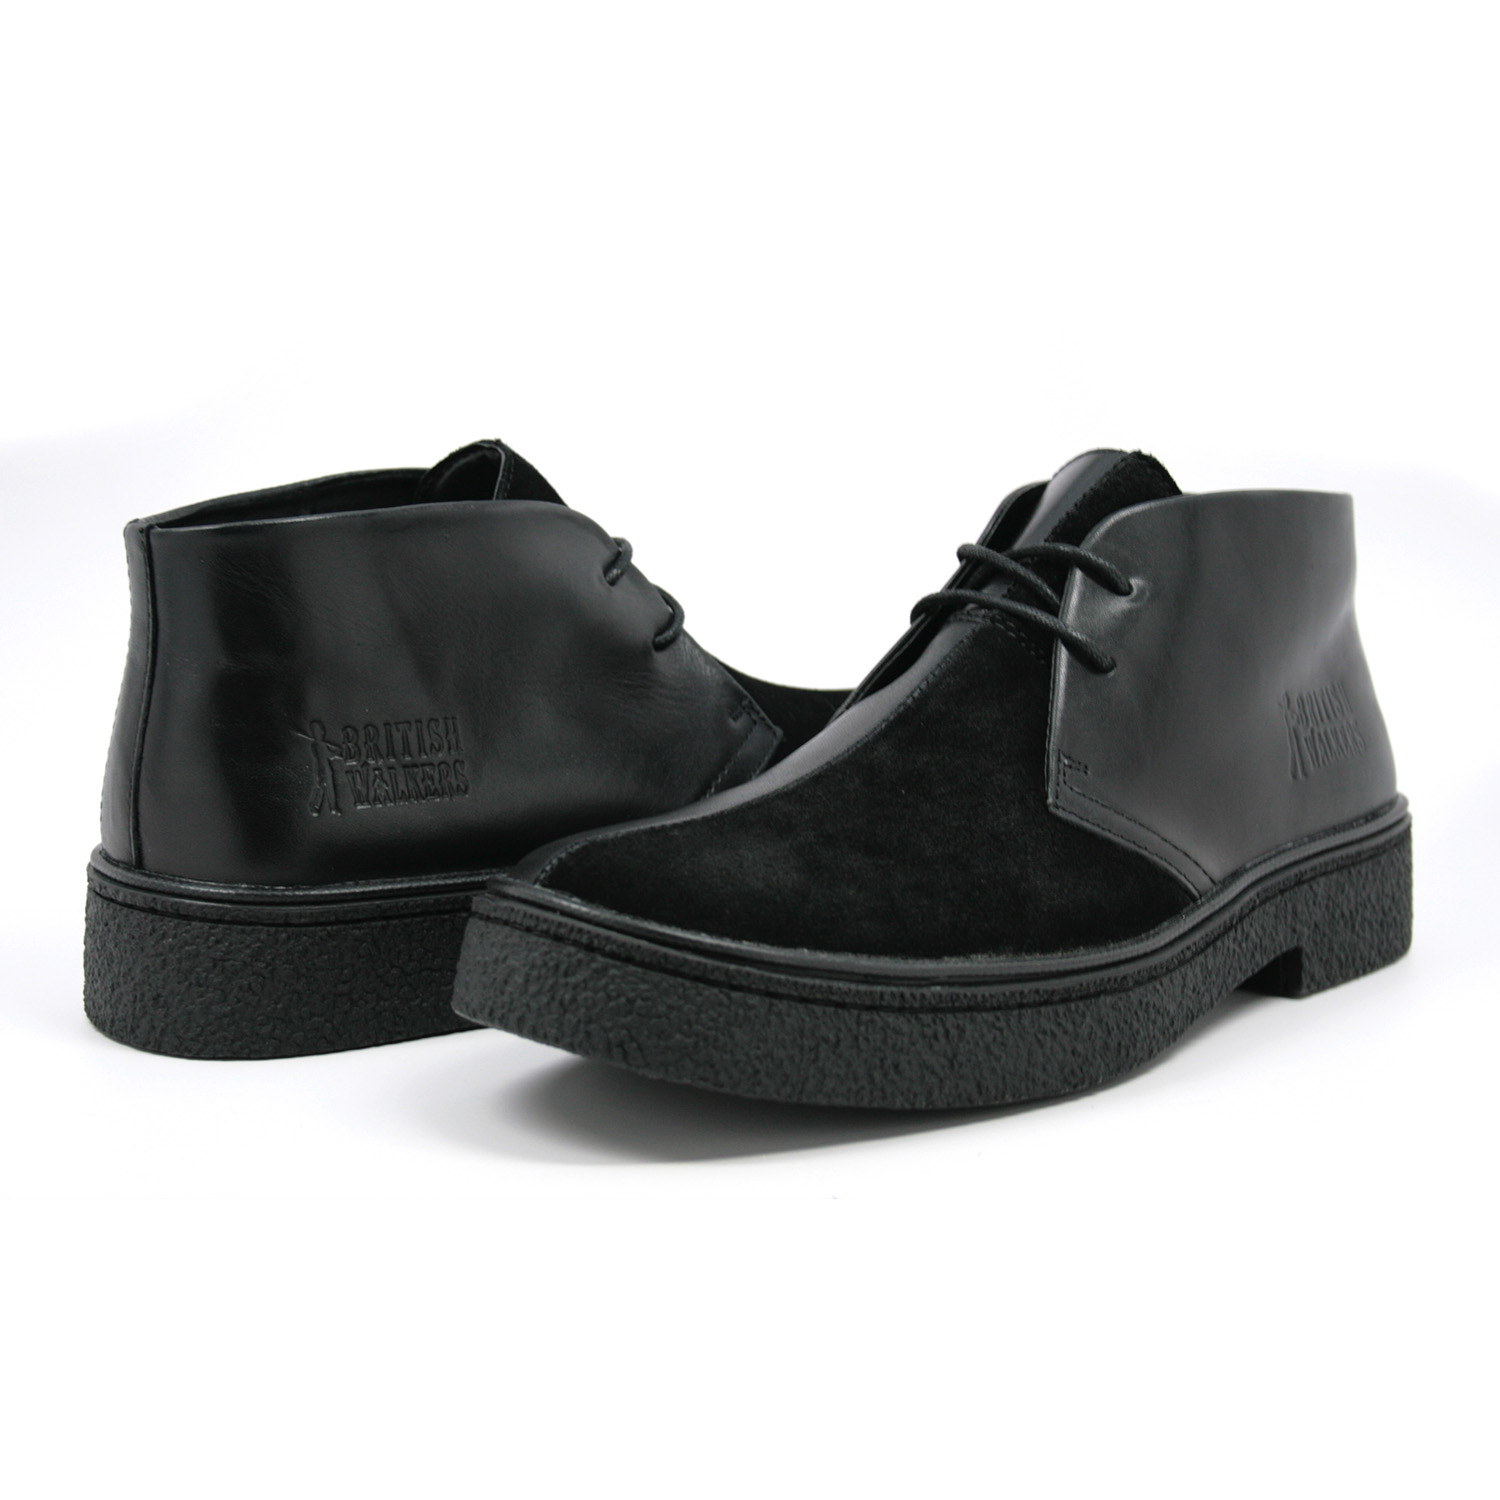 British Walkers Men's Playboy Chukka Boot Black/Black Split Toe ...